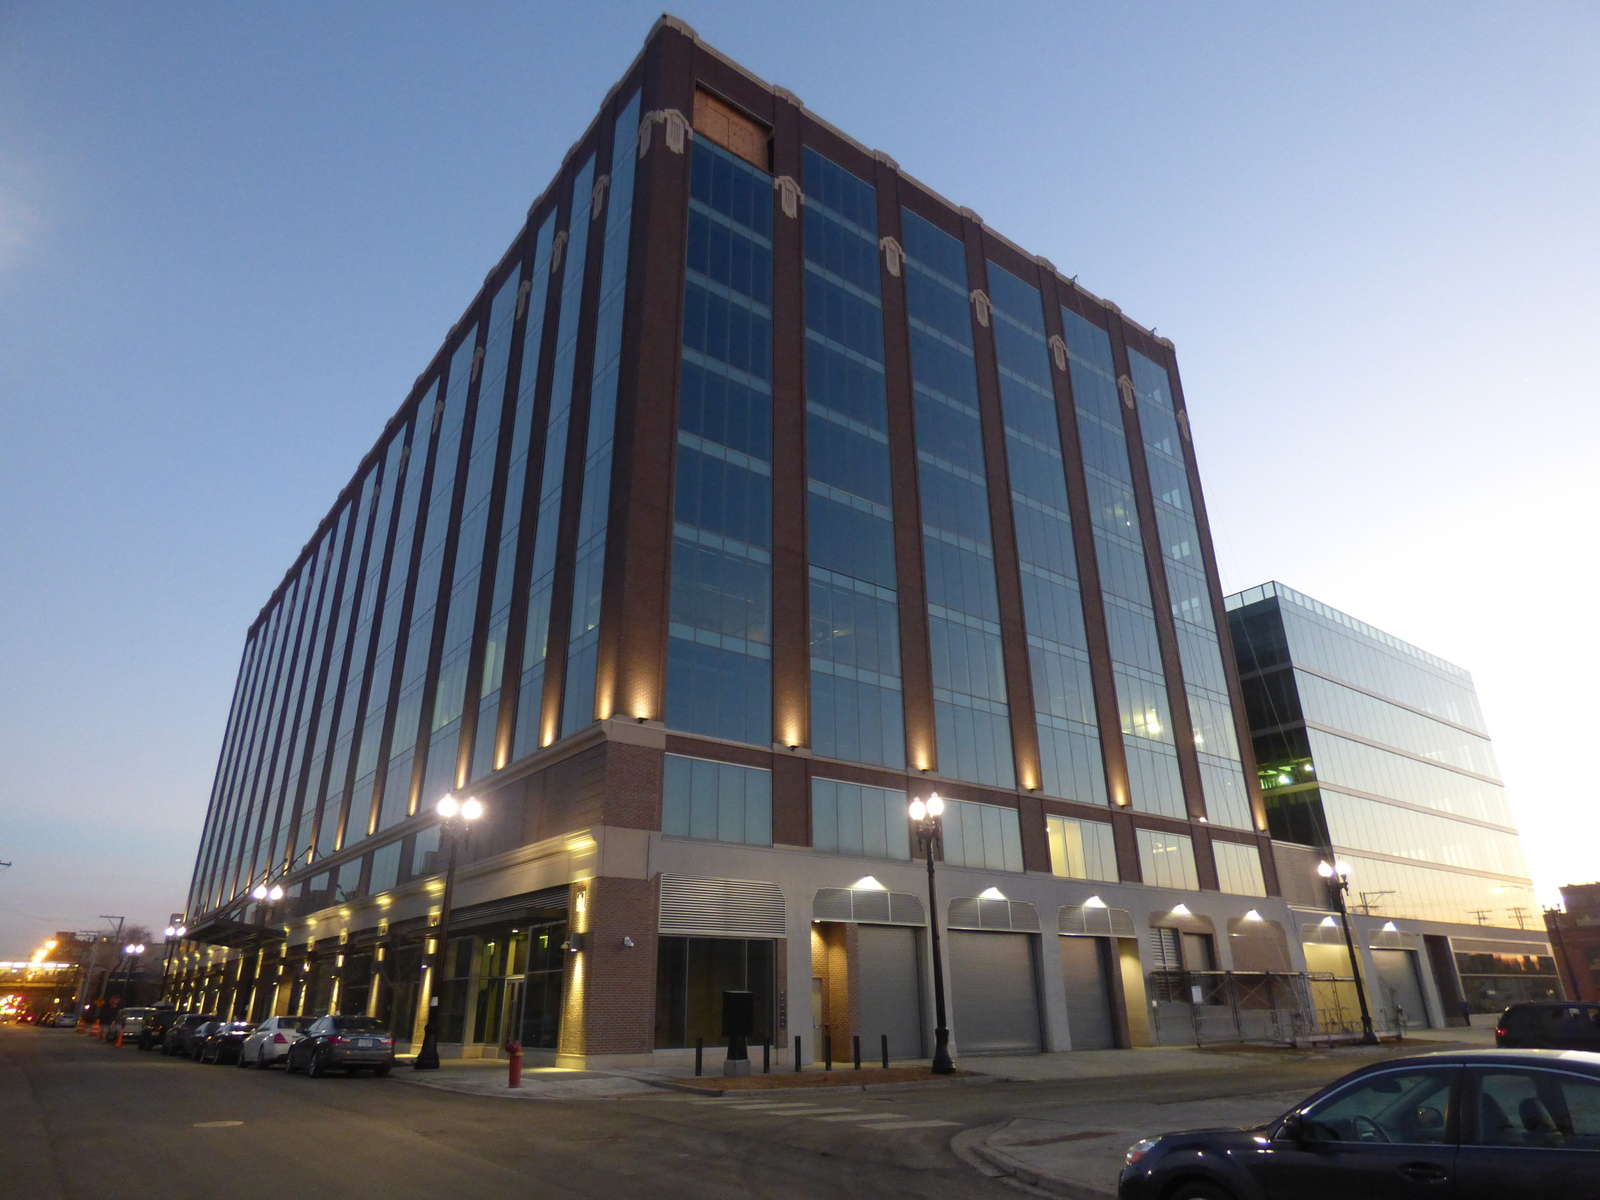 The Area Has Become A White Hot Market For Higher End Specialty Office  Space, Particularly For Lofts, As River North And Other Parts Of The West  Loop Have ...